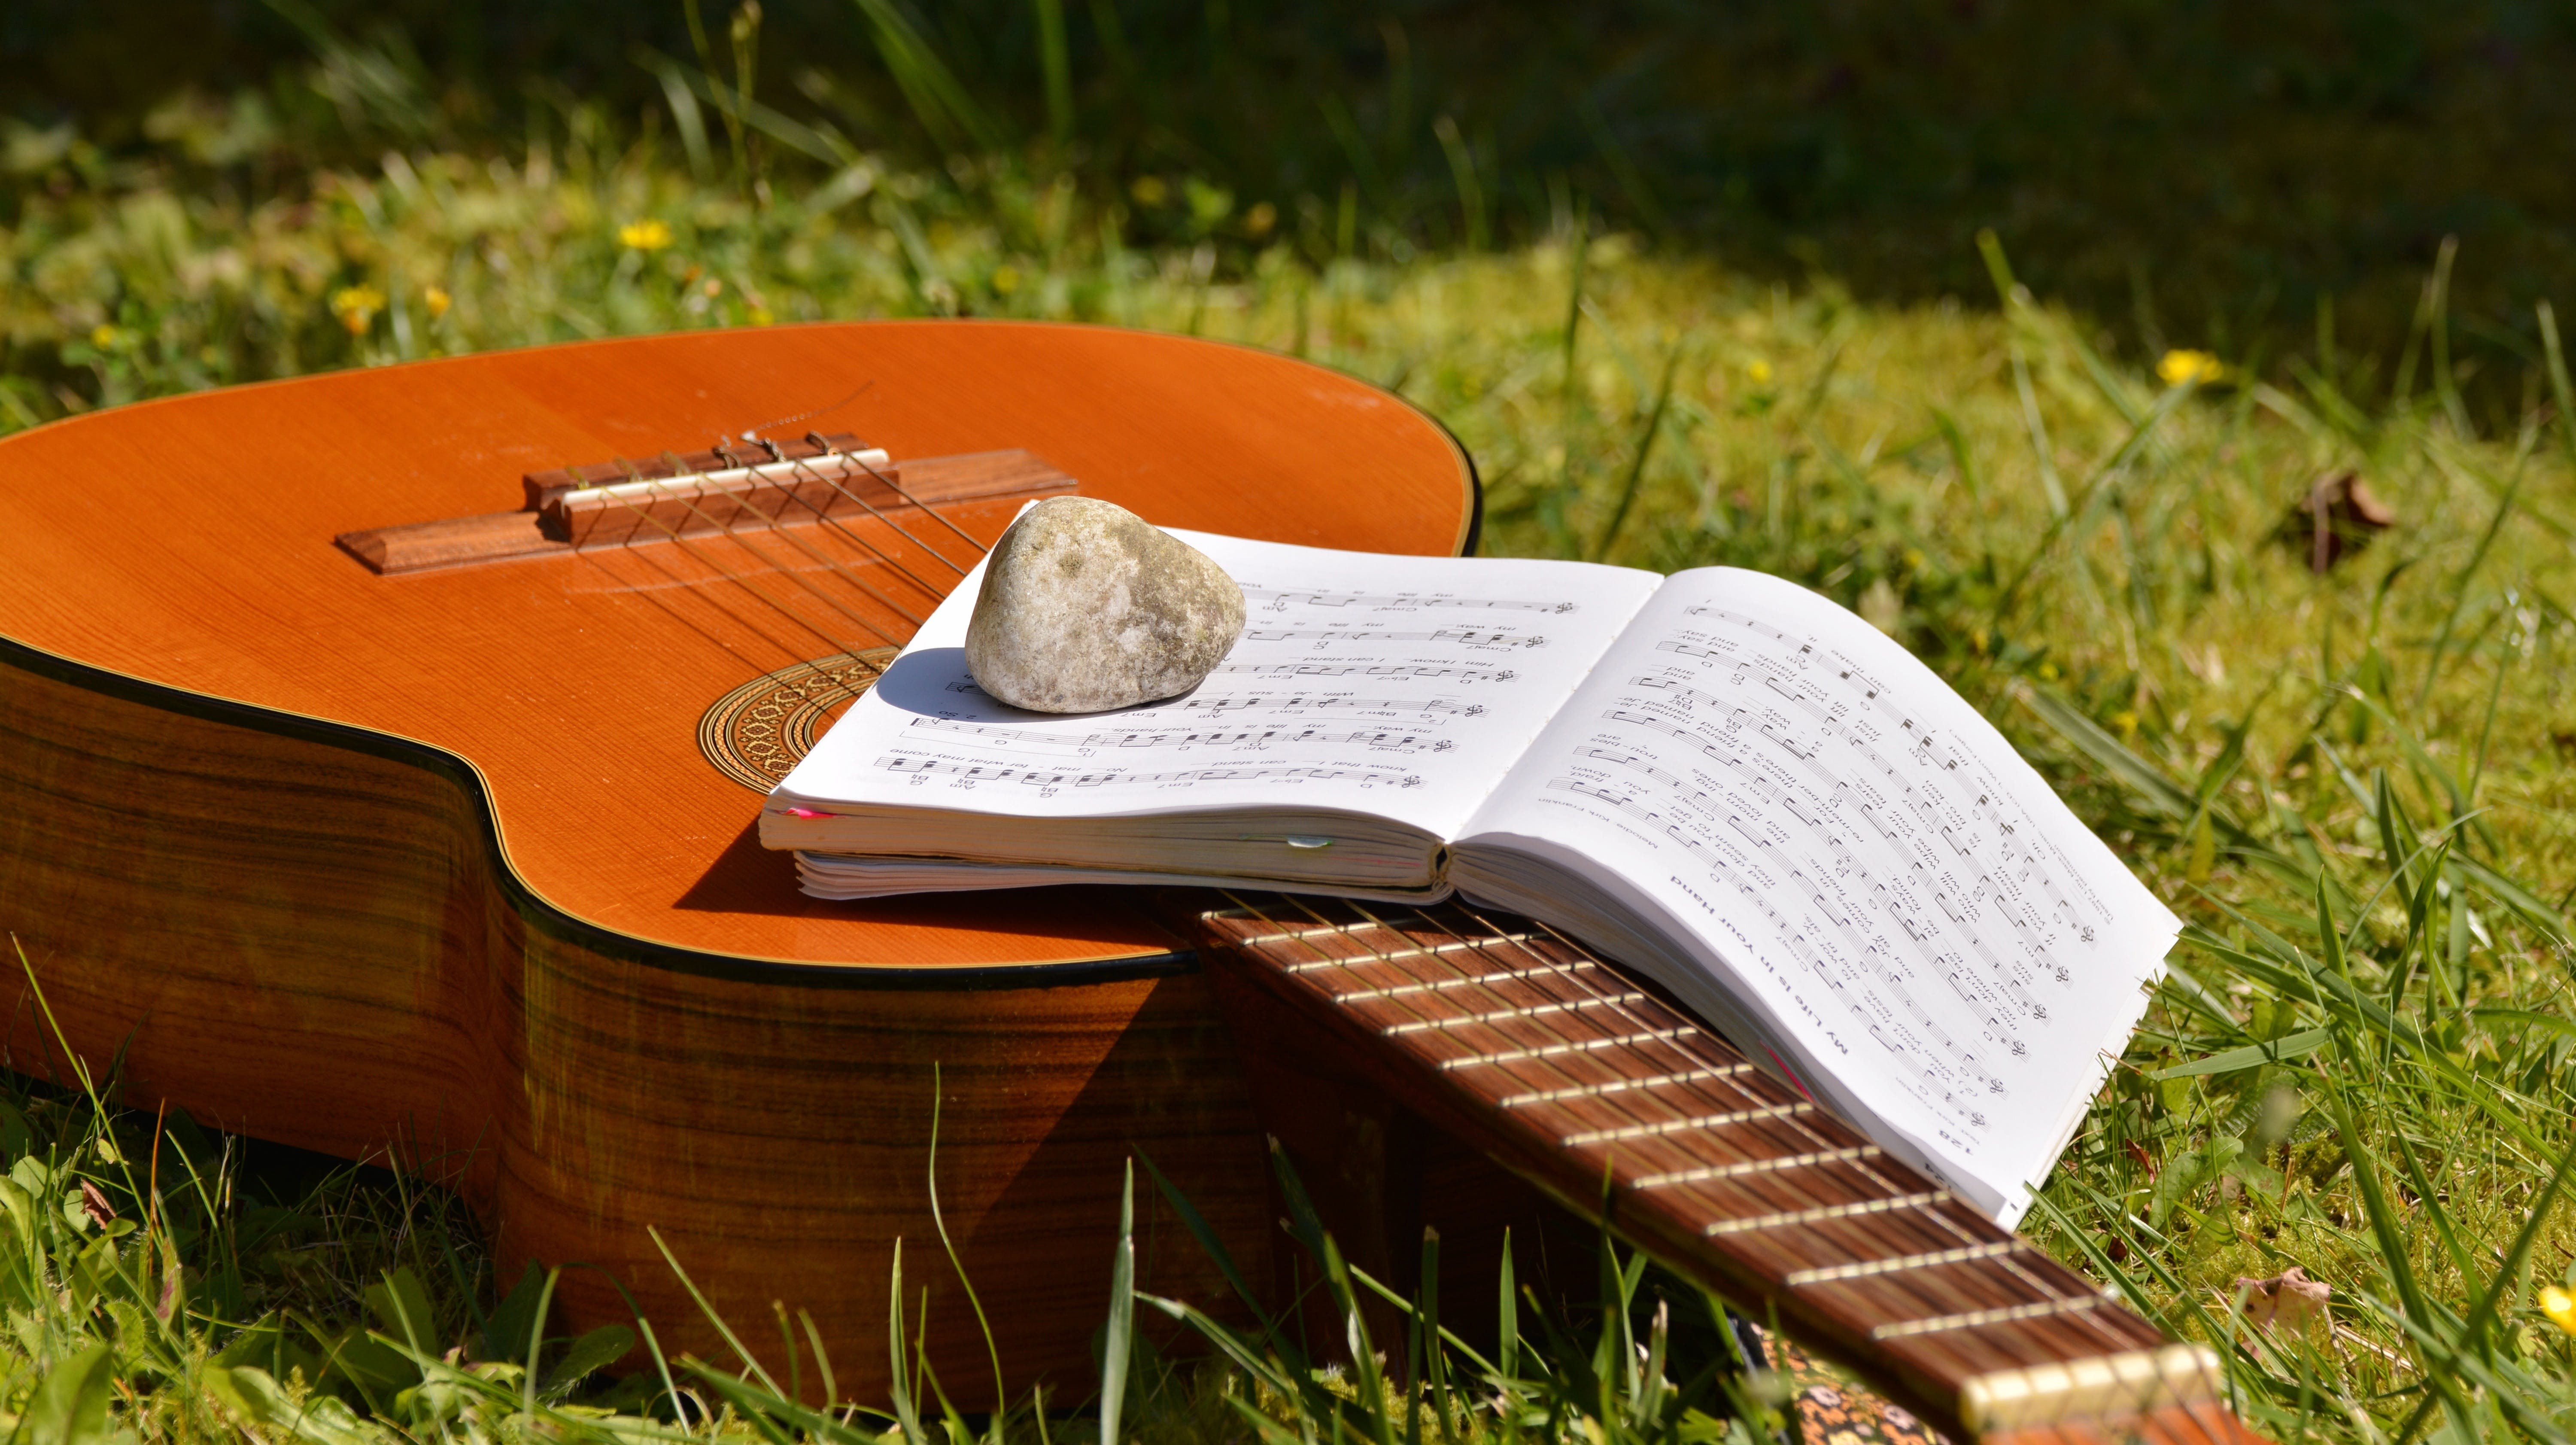 Song Book on Brown Classical Guitar on Green Grass during Daytime